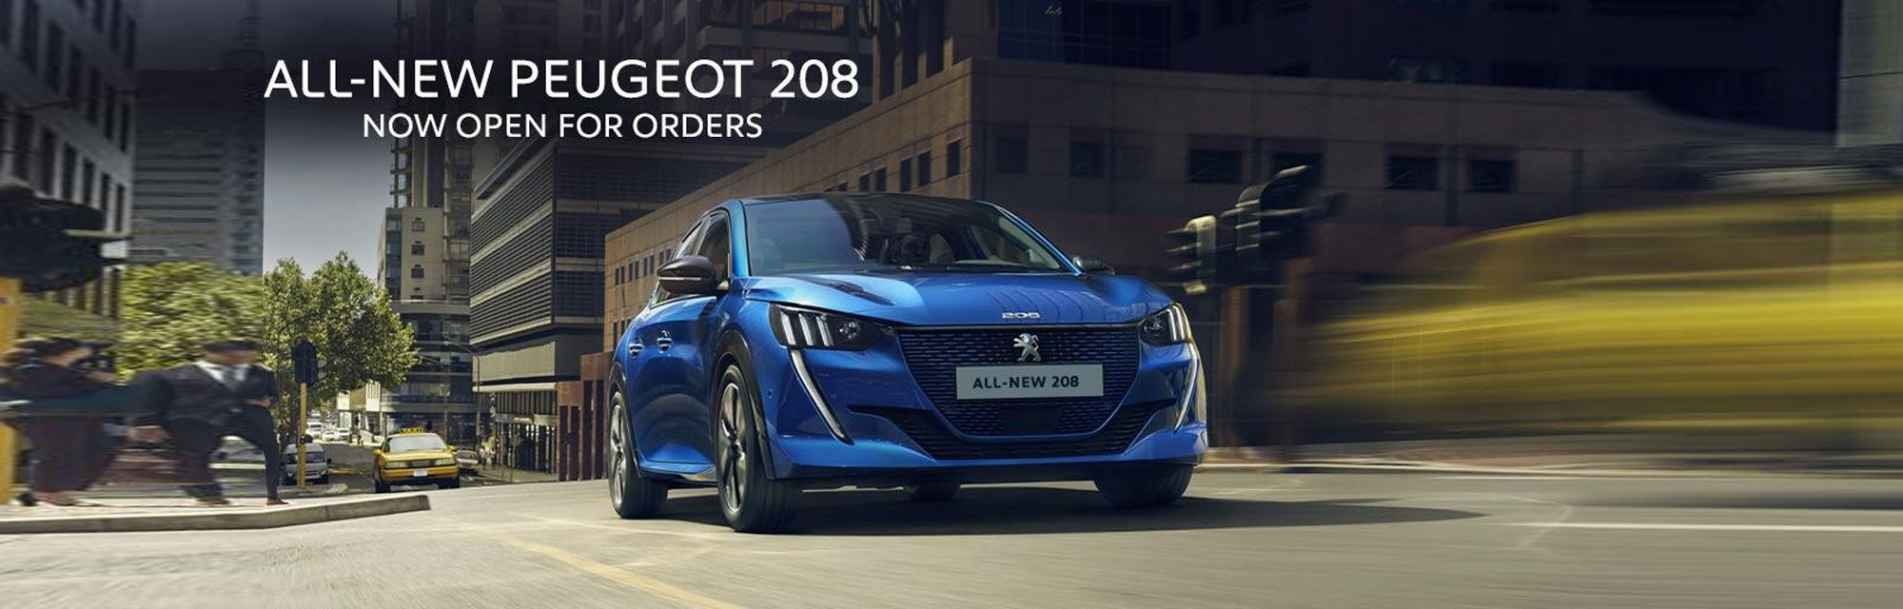 Peugeot All New 208 Peter Ambrose